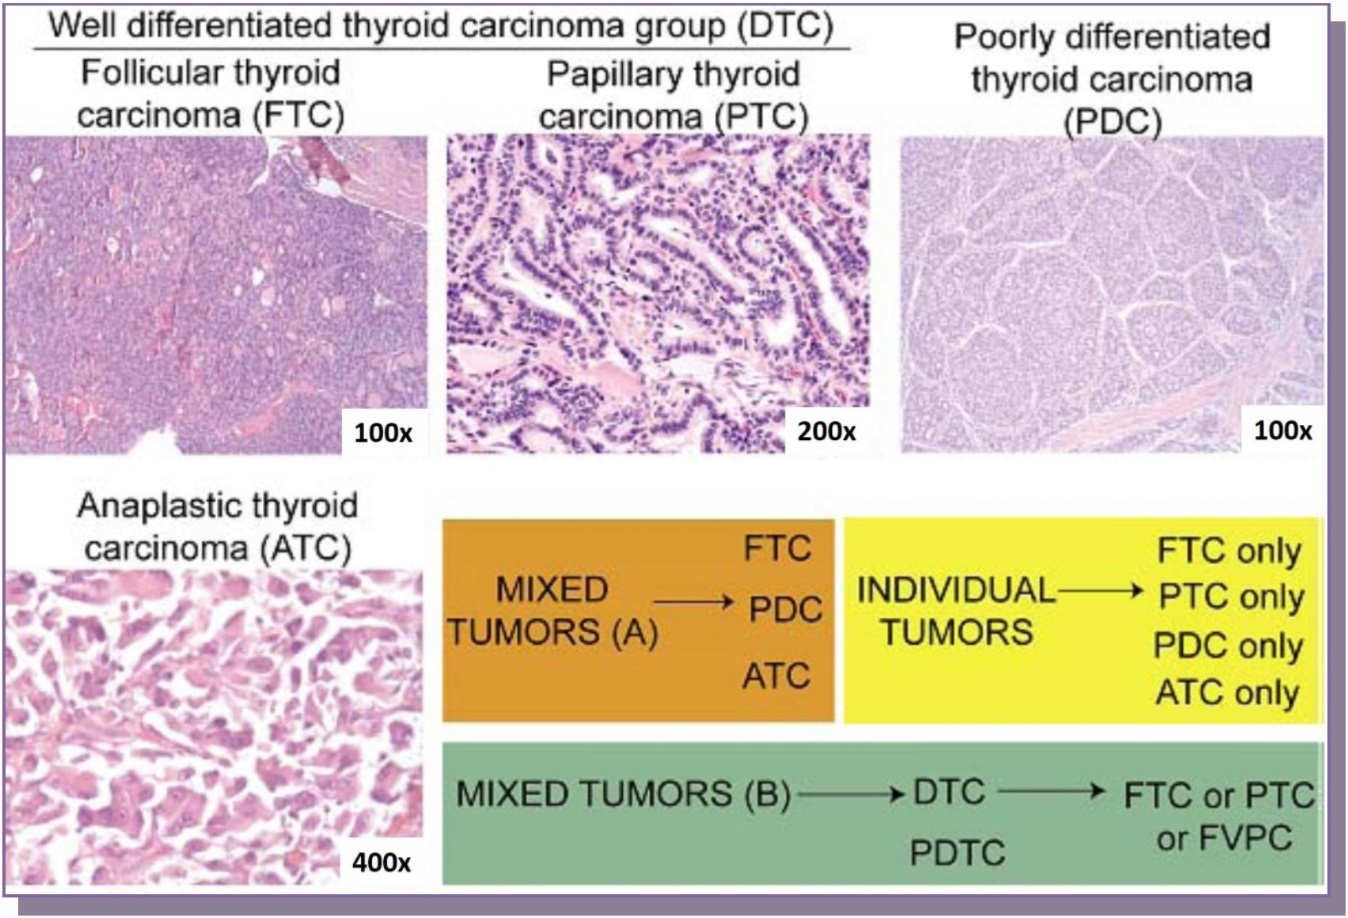 papillary thyroid cancer development